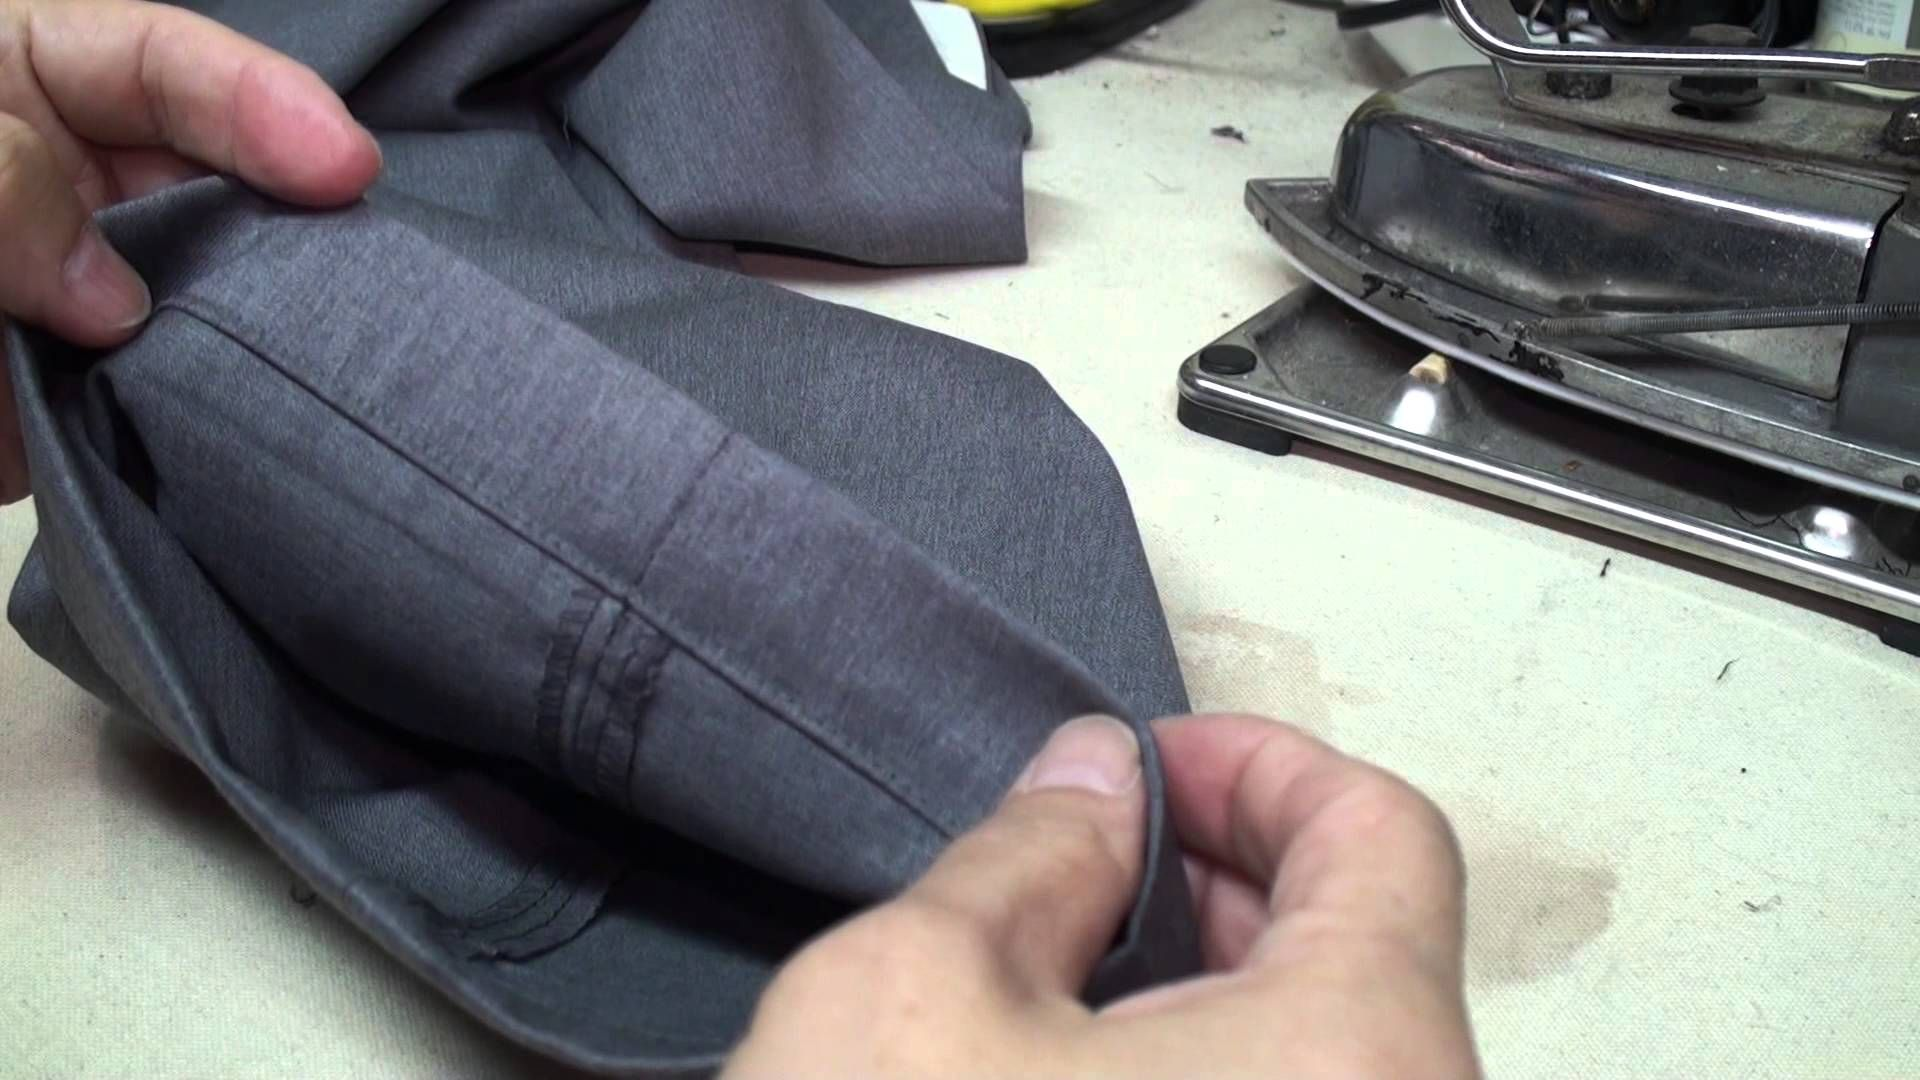 How To Hem Pants With A Cuff How To Hem Dress Pants With Cuff And Jeans Hem Dress Pants How To Hem Pants Dress Pants